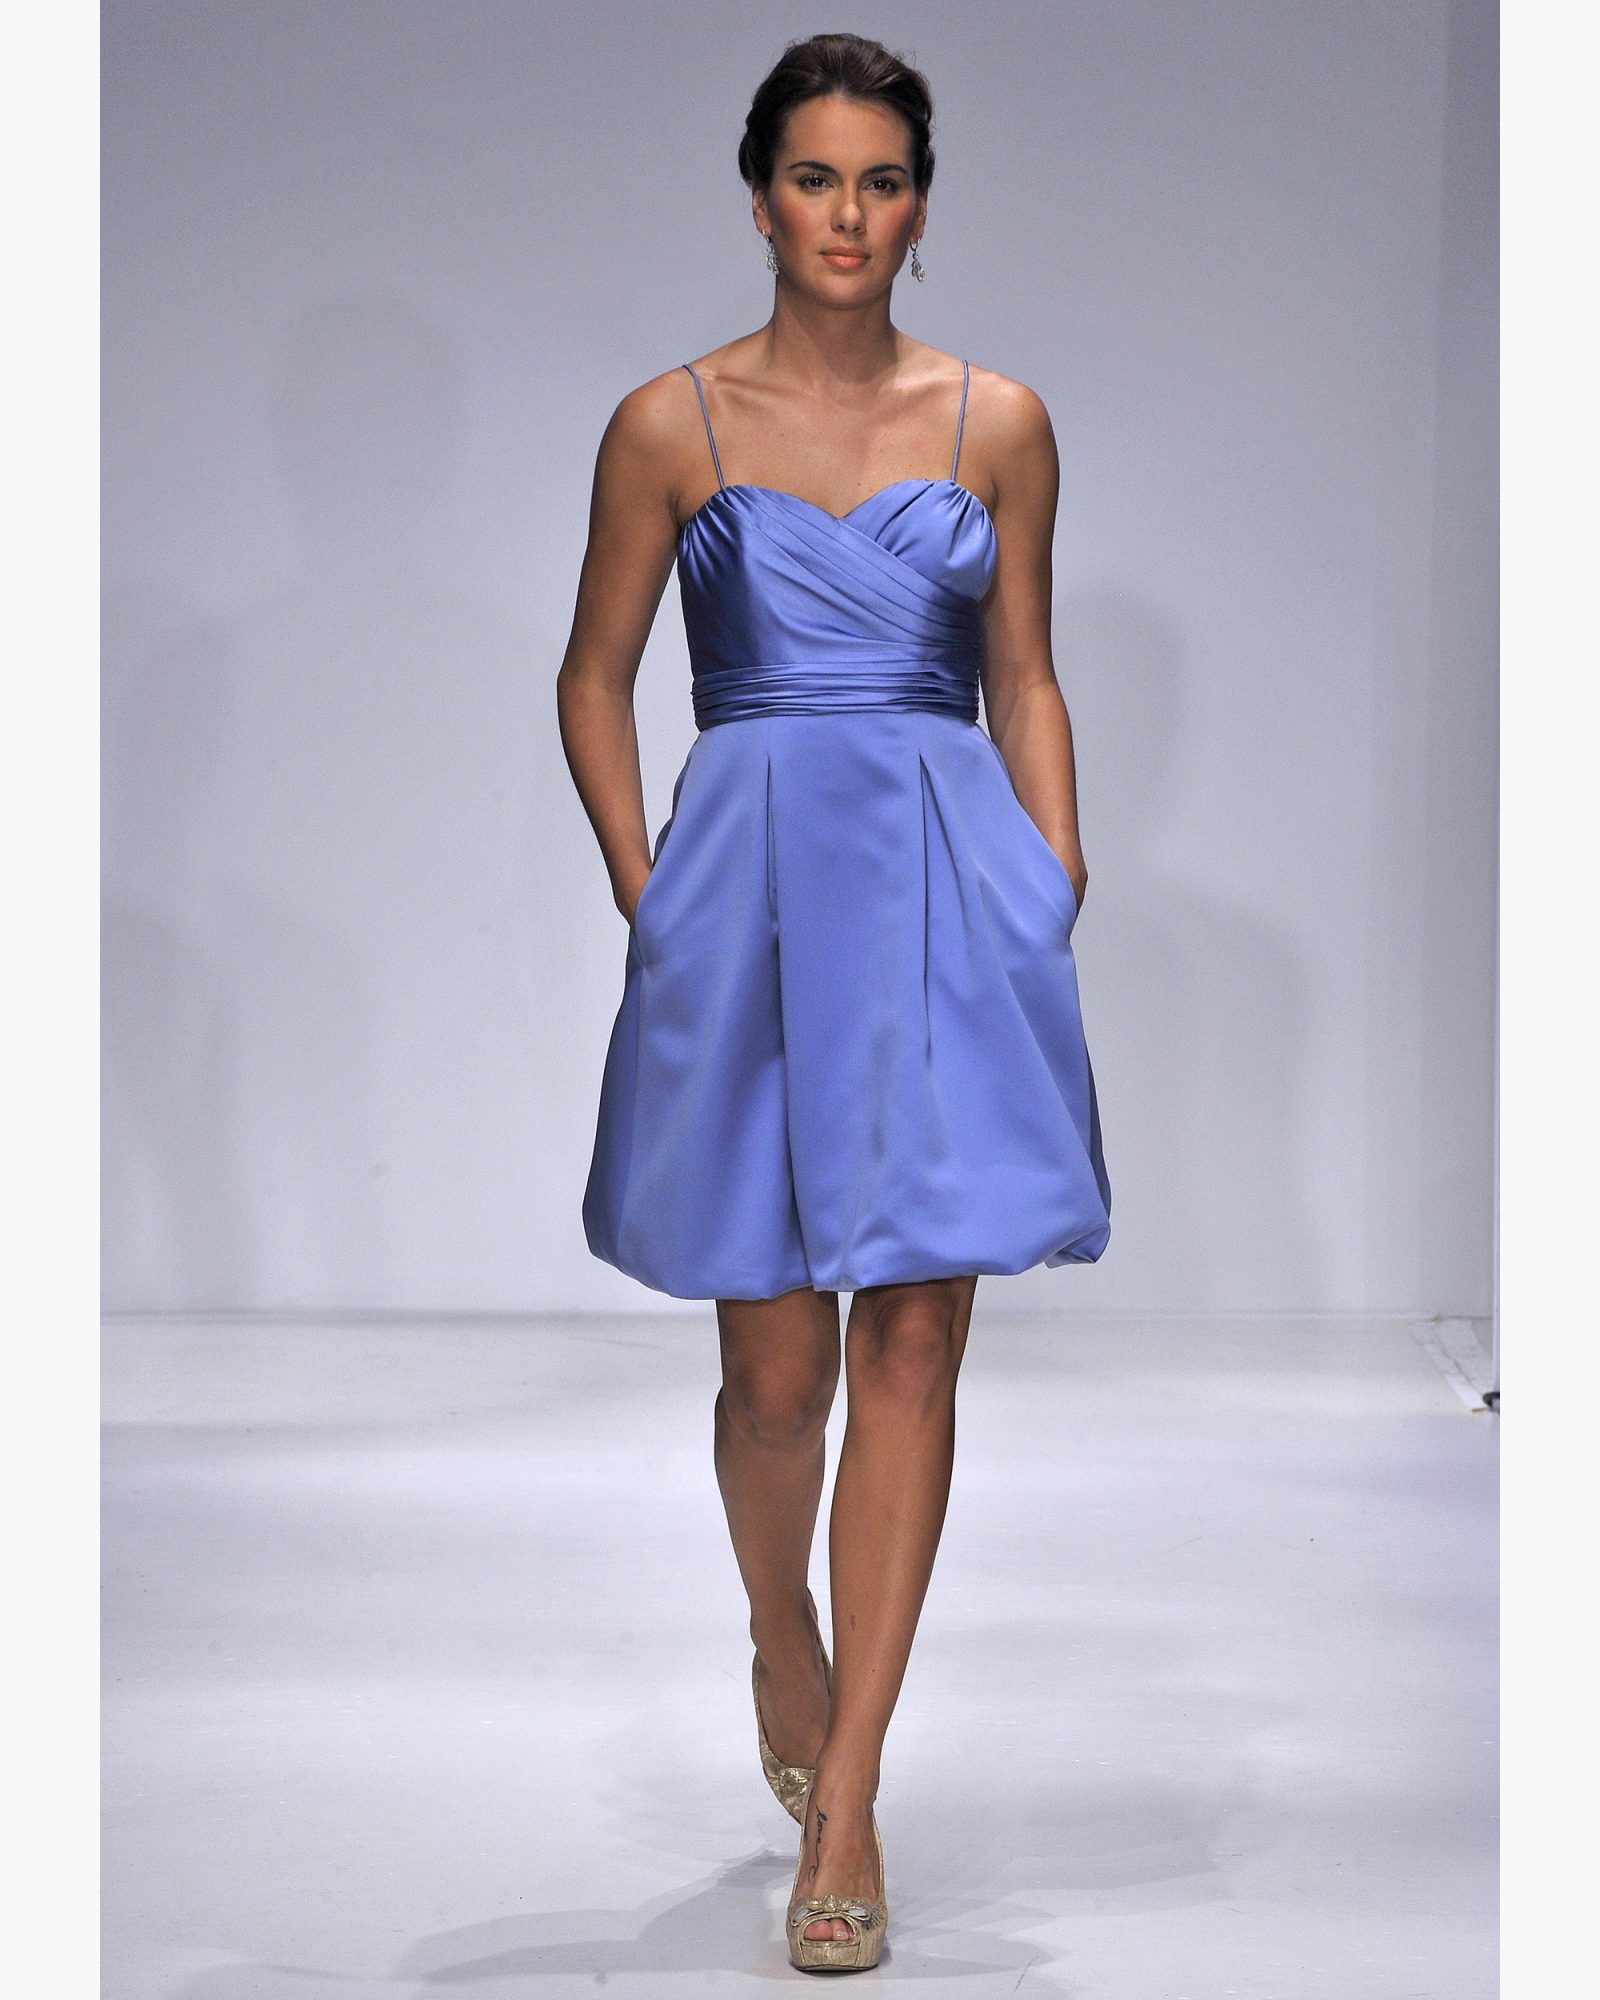 Short Periwinkle Bridesmaid Dress